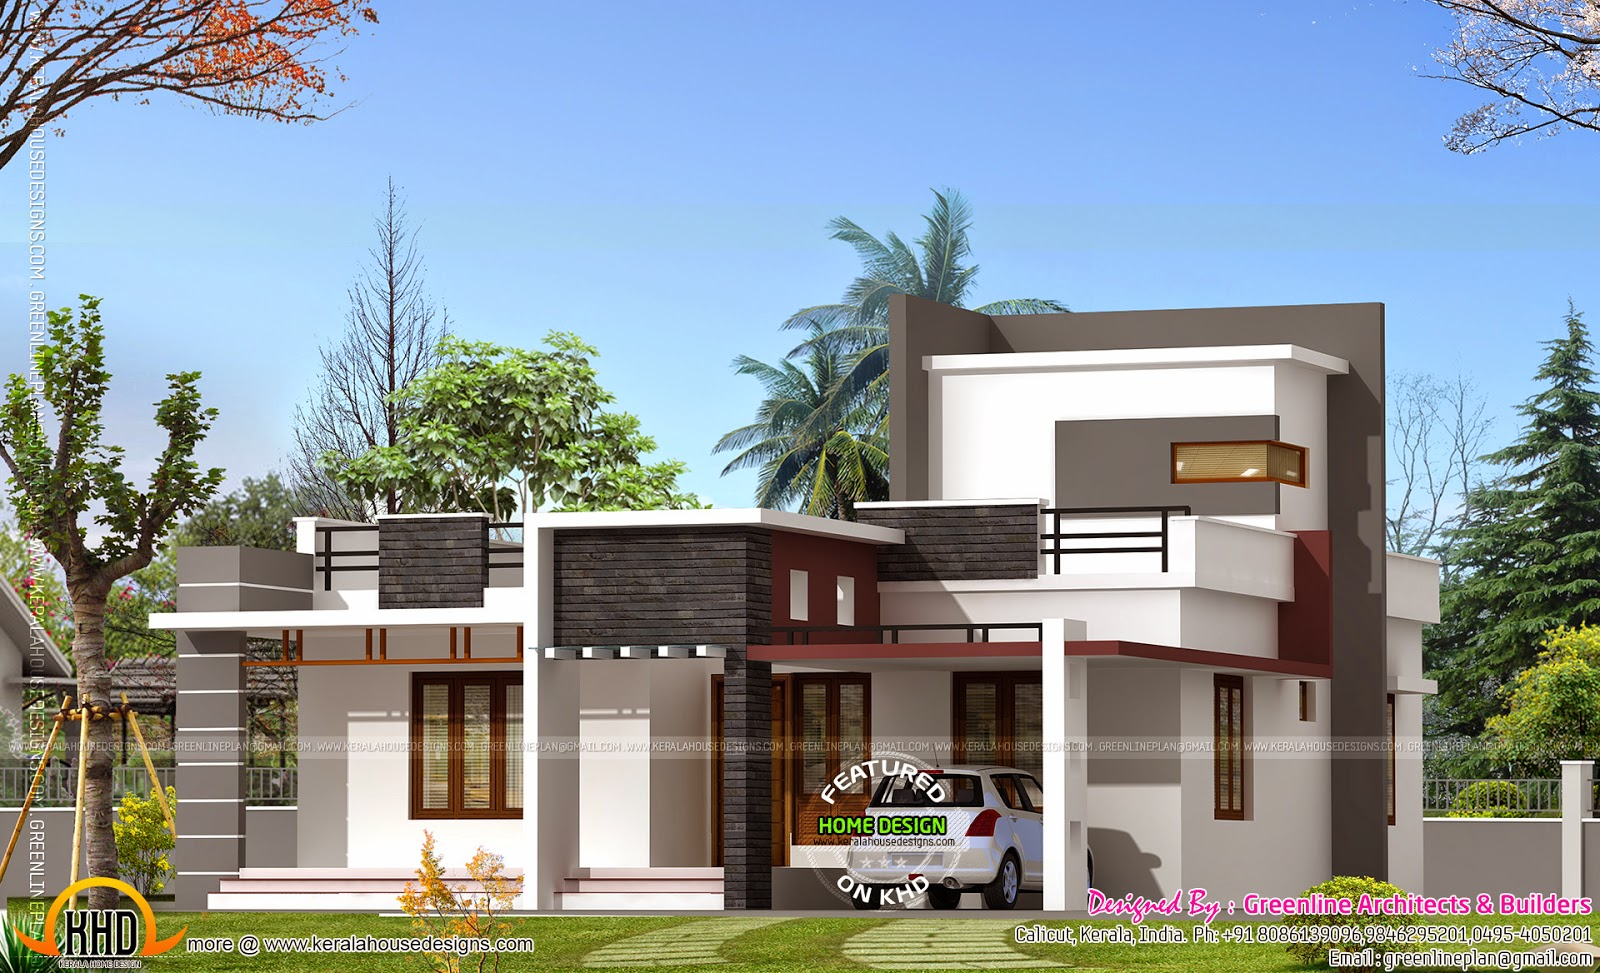 Small house plans under 1000 sq ft with loft joy studio for Kerala home plan and elevation 1000 sq ft